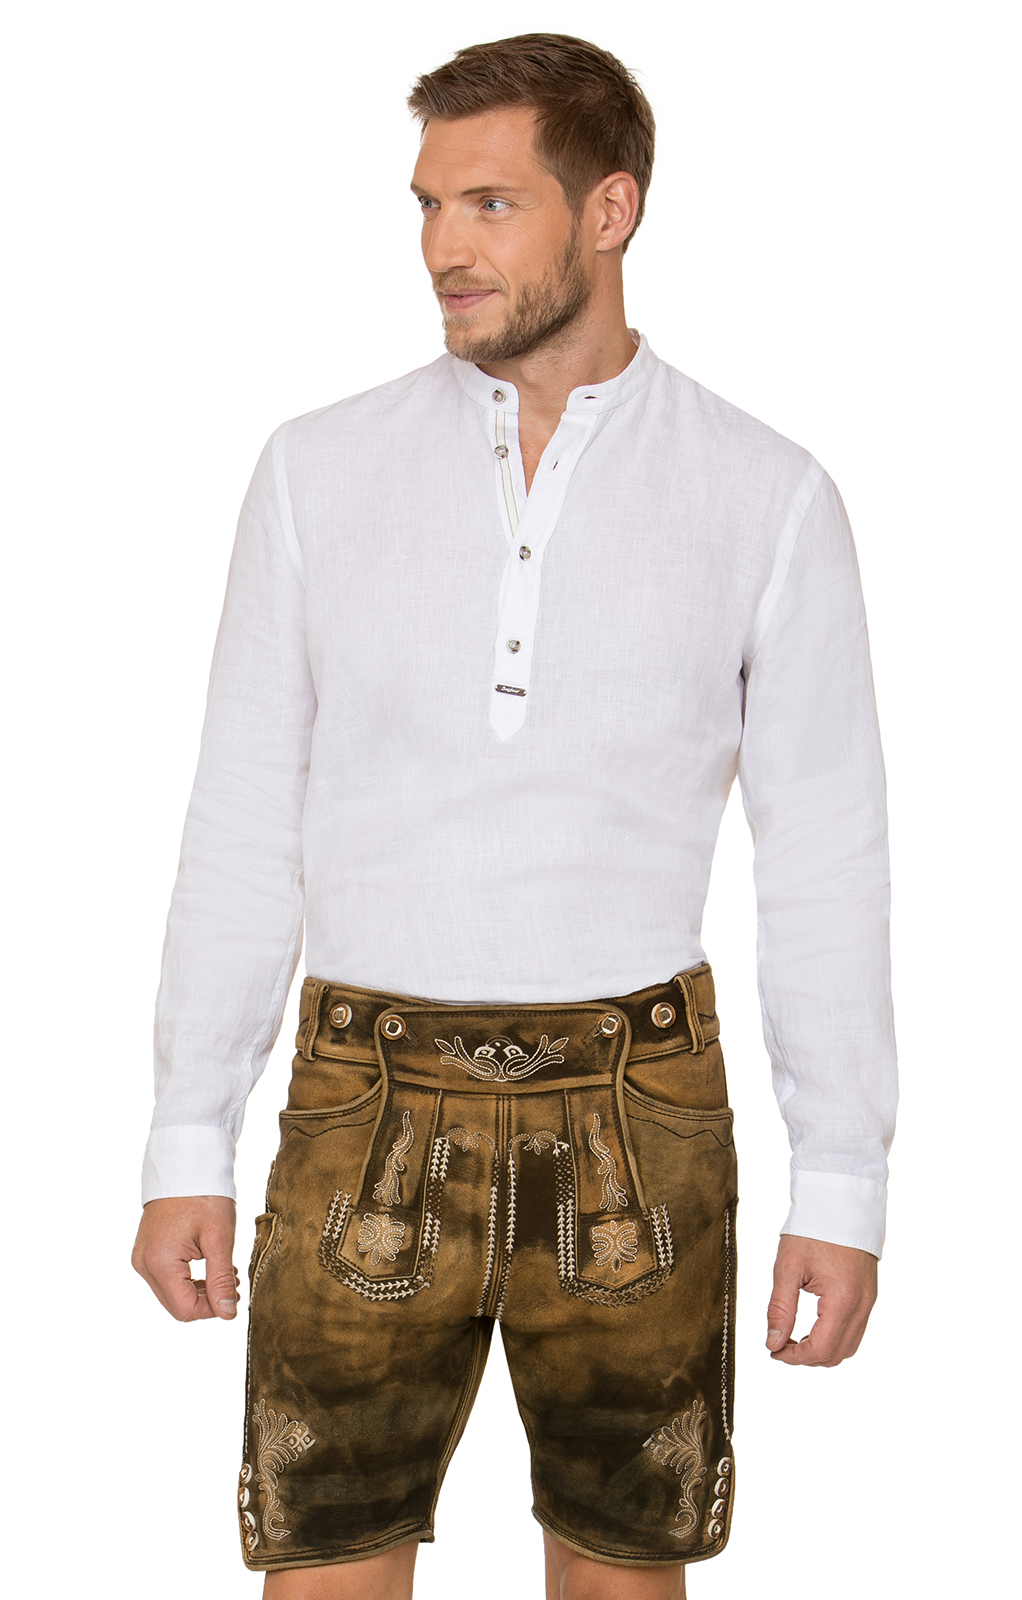 Pantalone Trachten in pelle HM1050 marrone von Stockerpoint